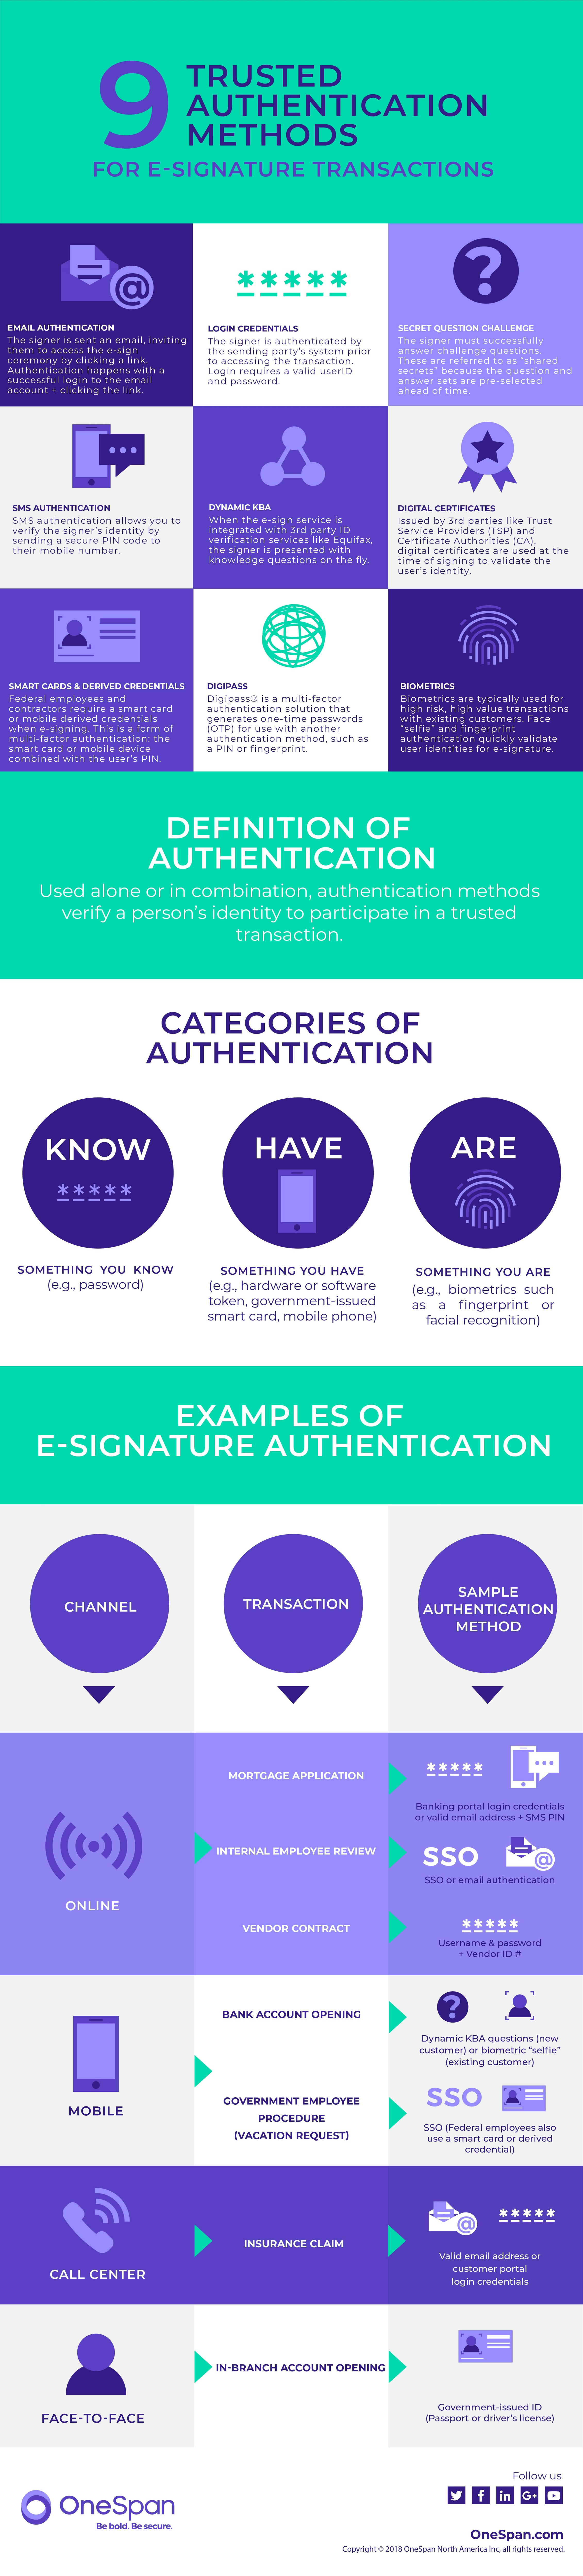 Choosing the right authentication method for e-signatures